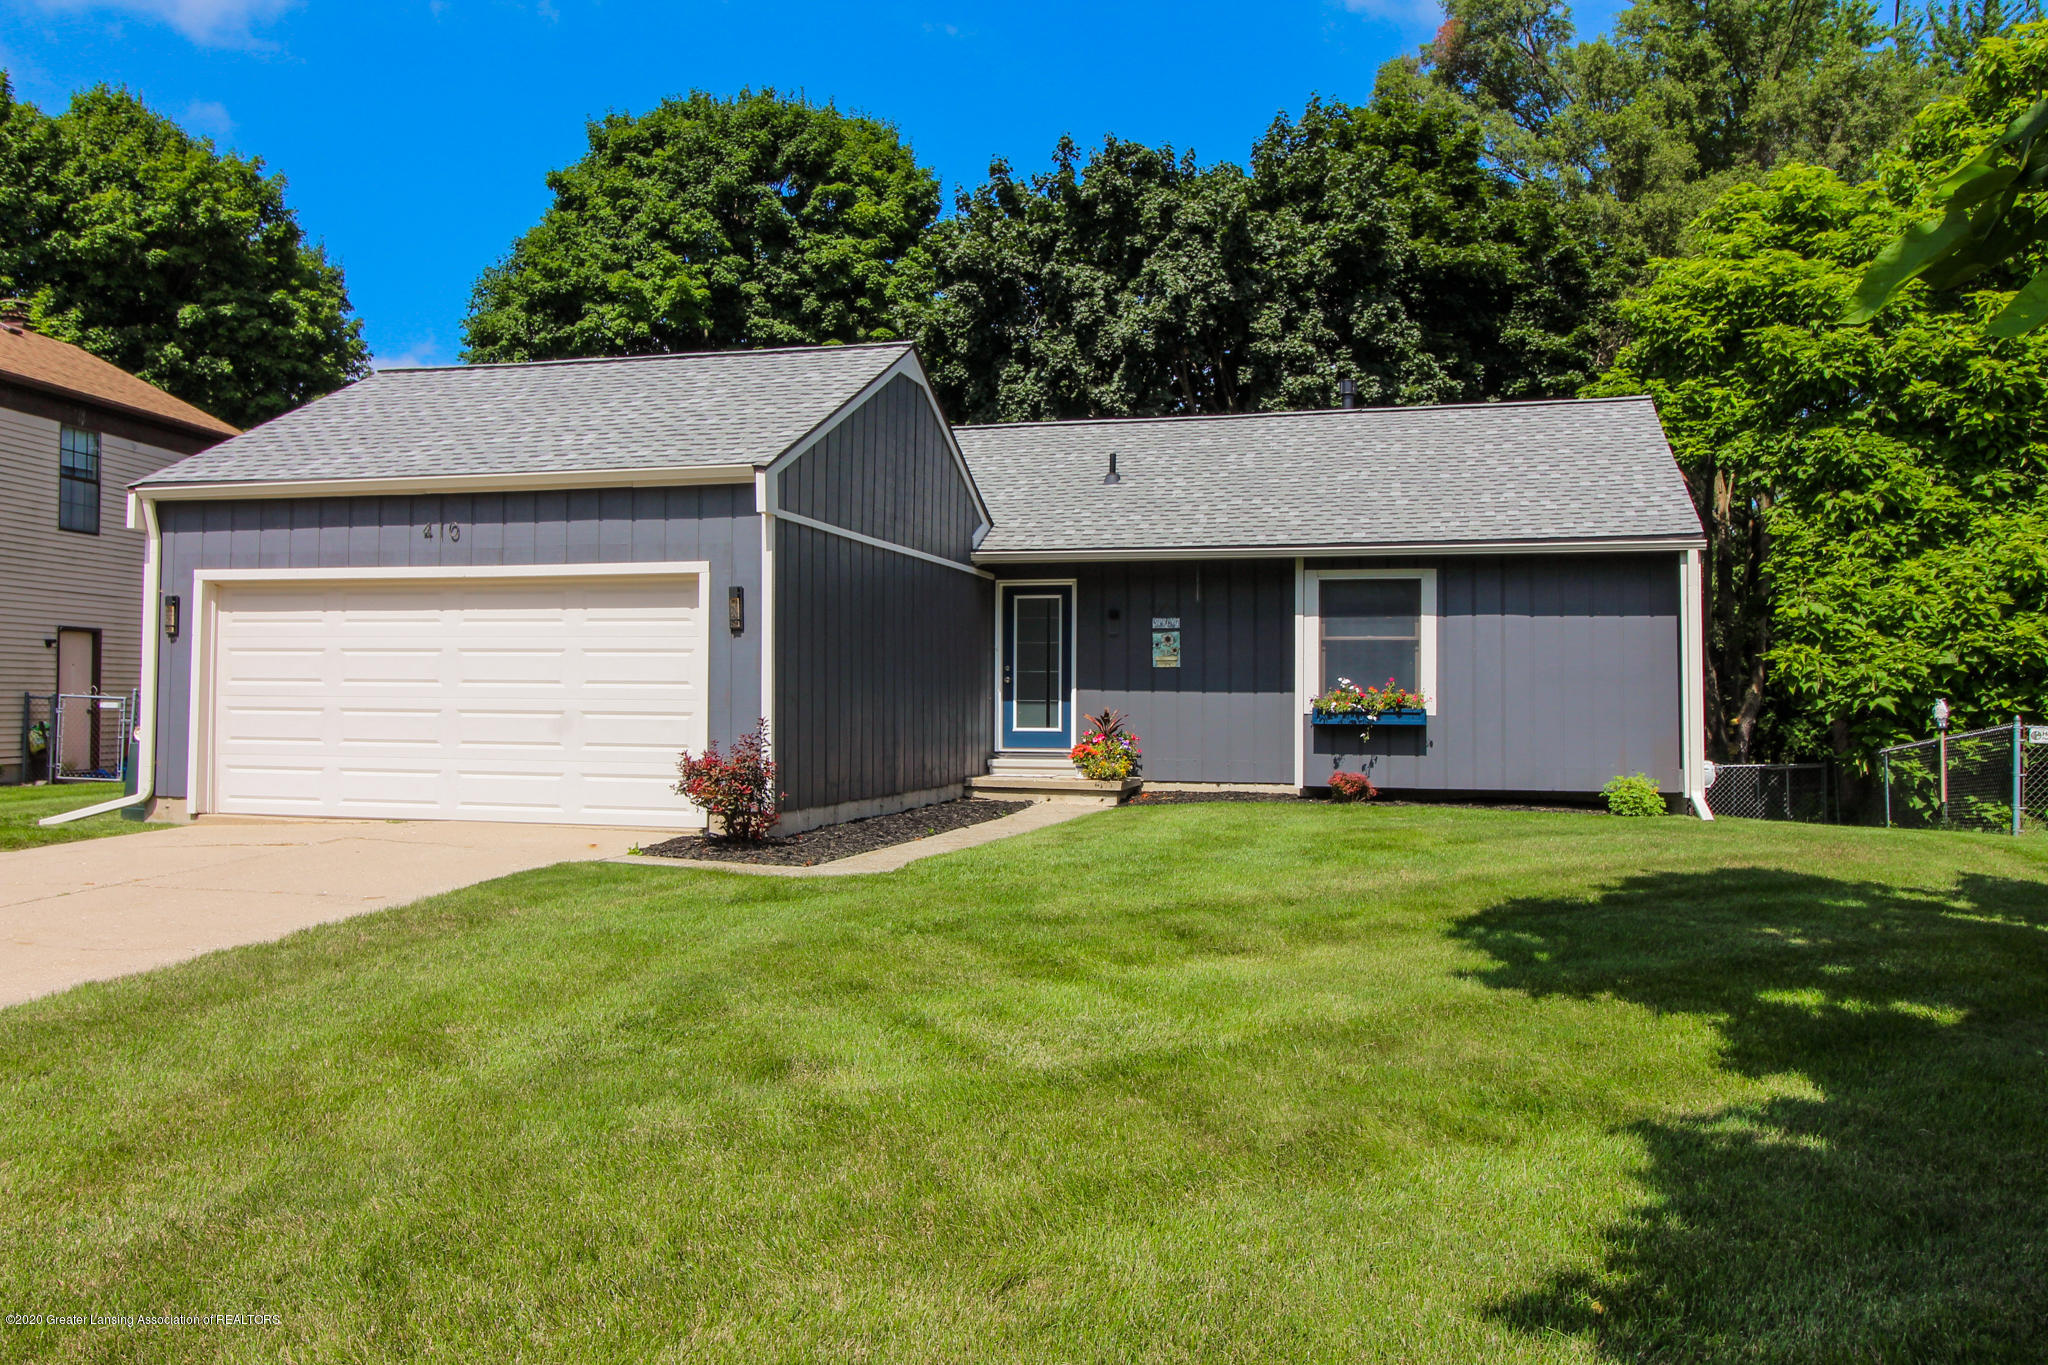 410 Chesley Dr - 410 Chesley - 1